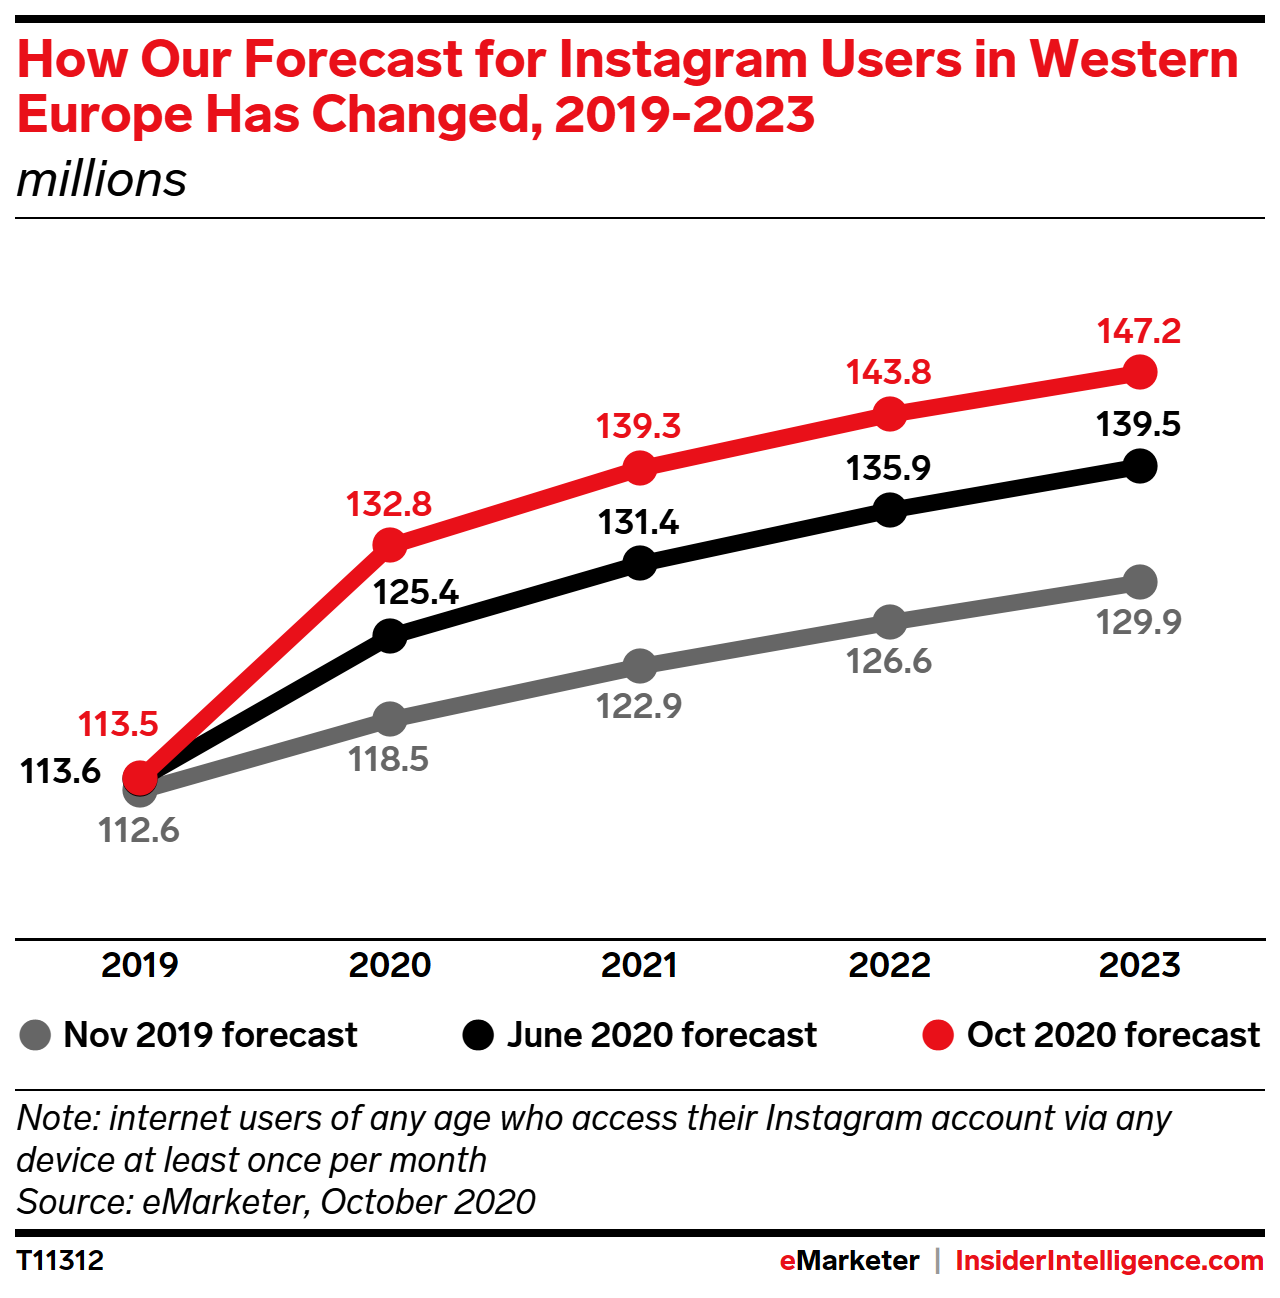 How Our Forecast for Instagram Users in Western Europe Has Changed, 2019-2023 (millions)